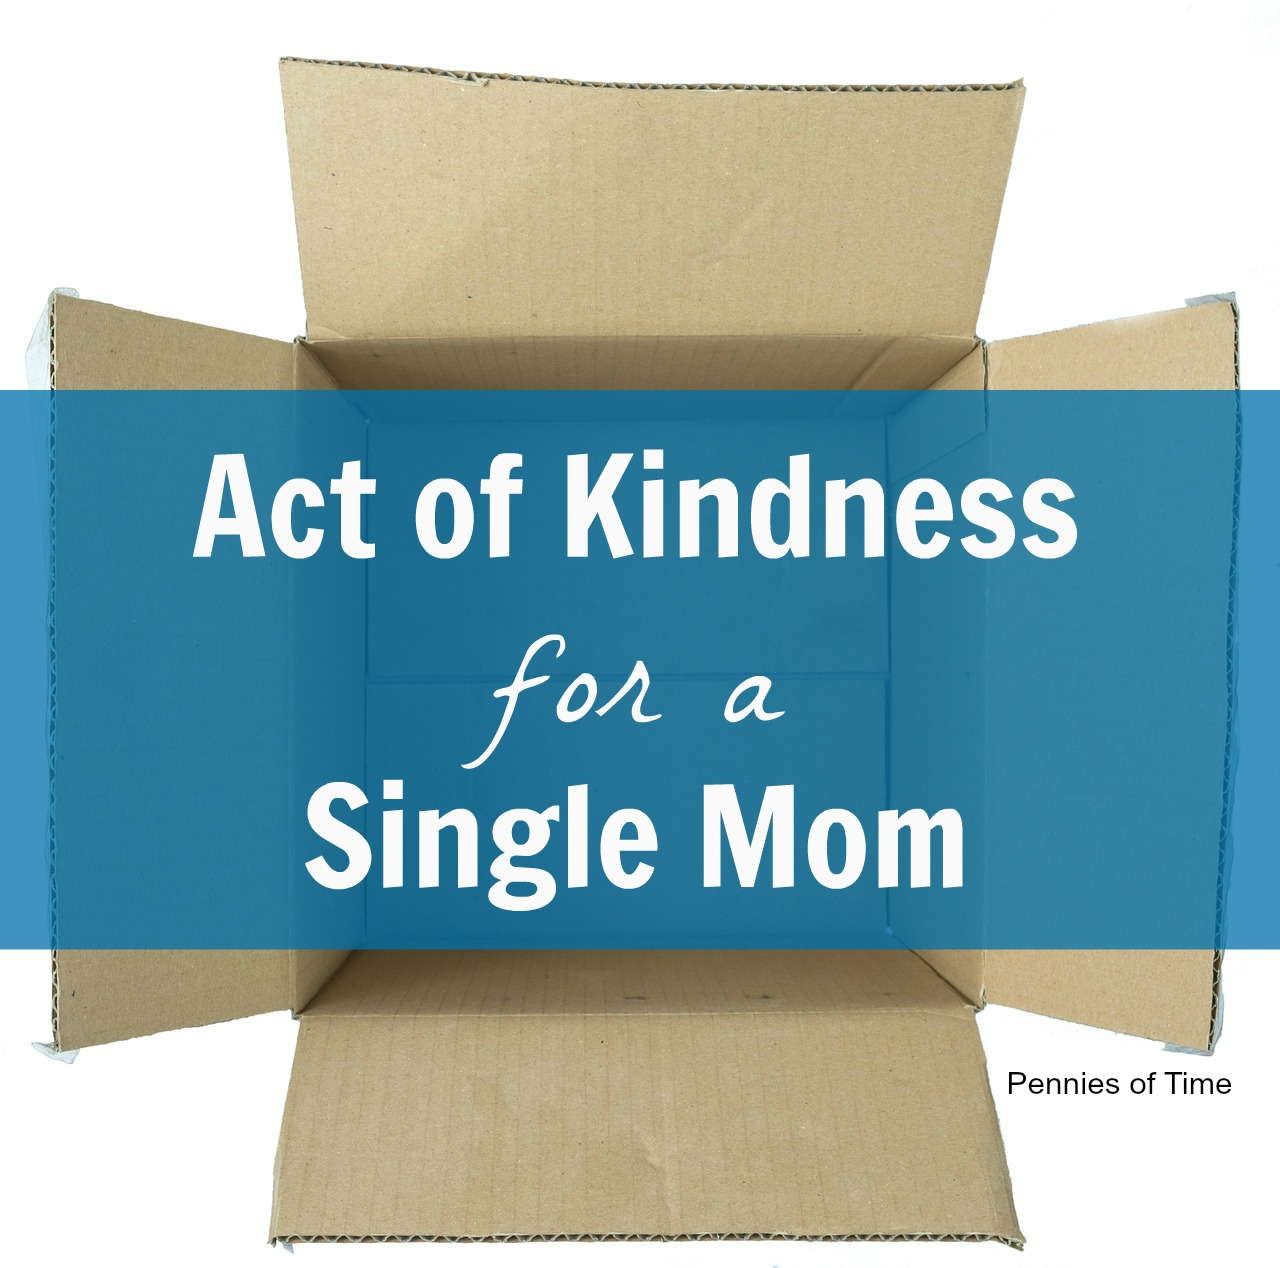 Act of Kindness for a Single Mom Pennies of Time